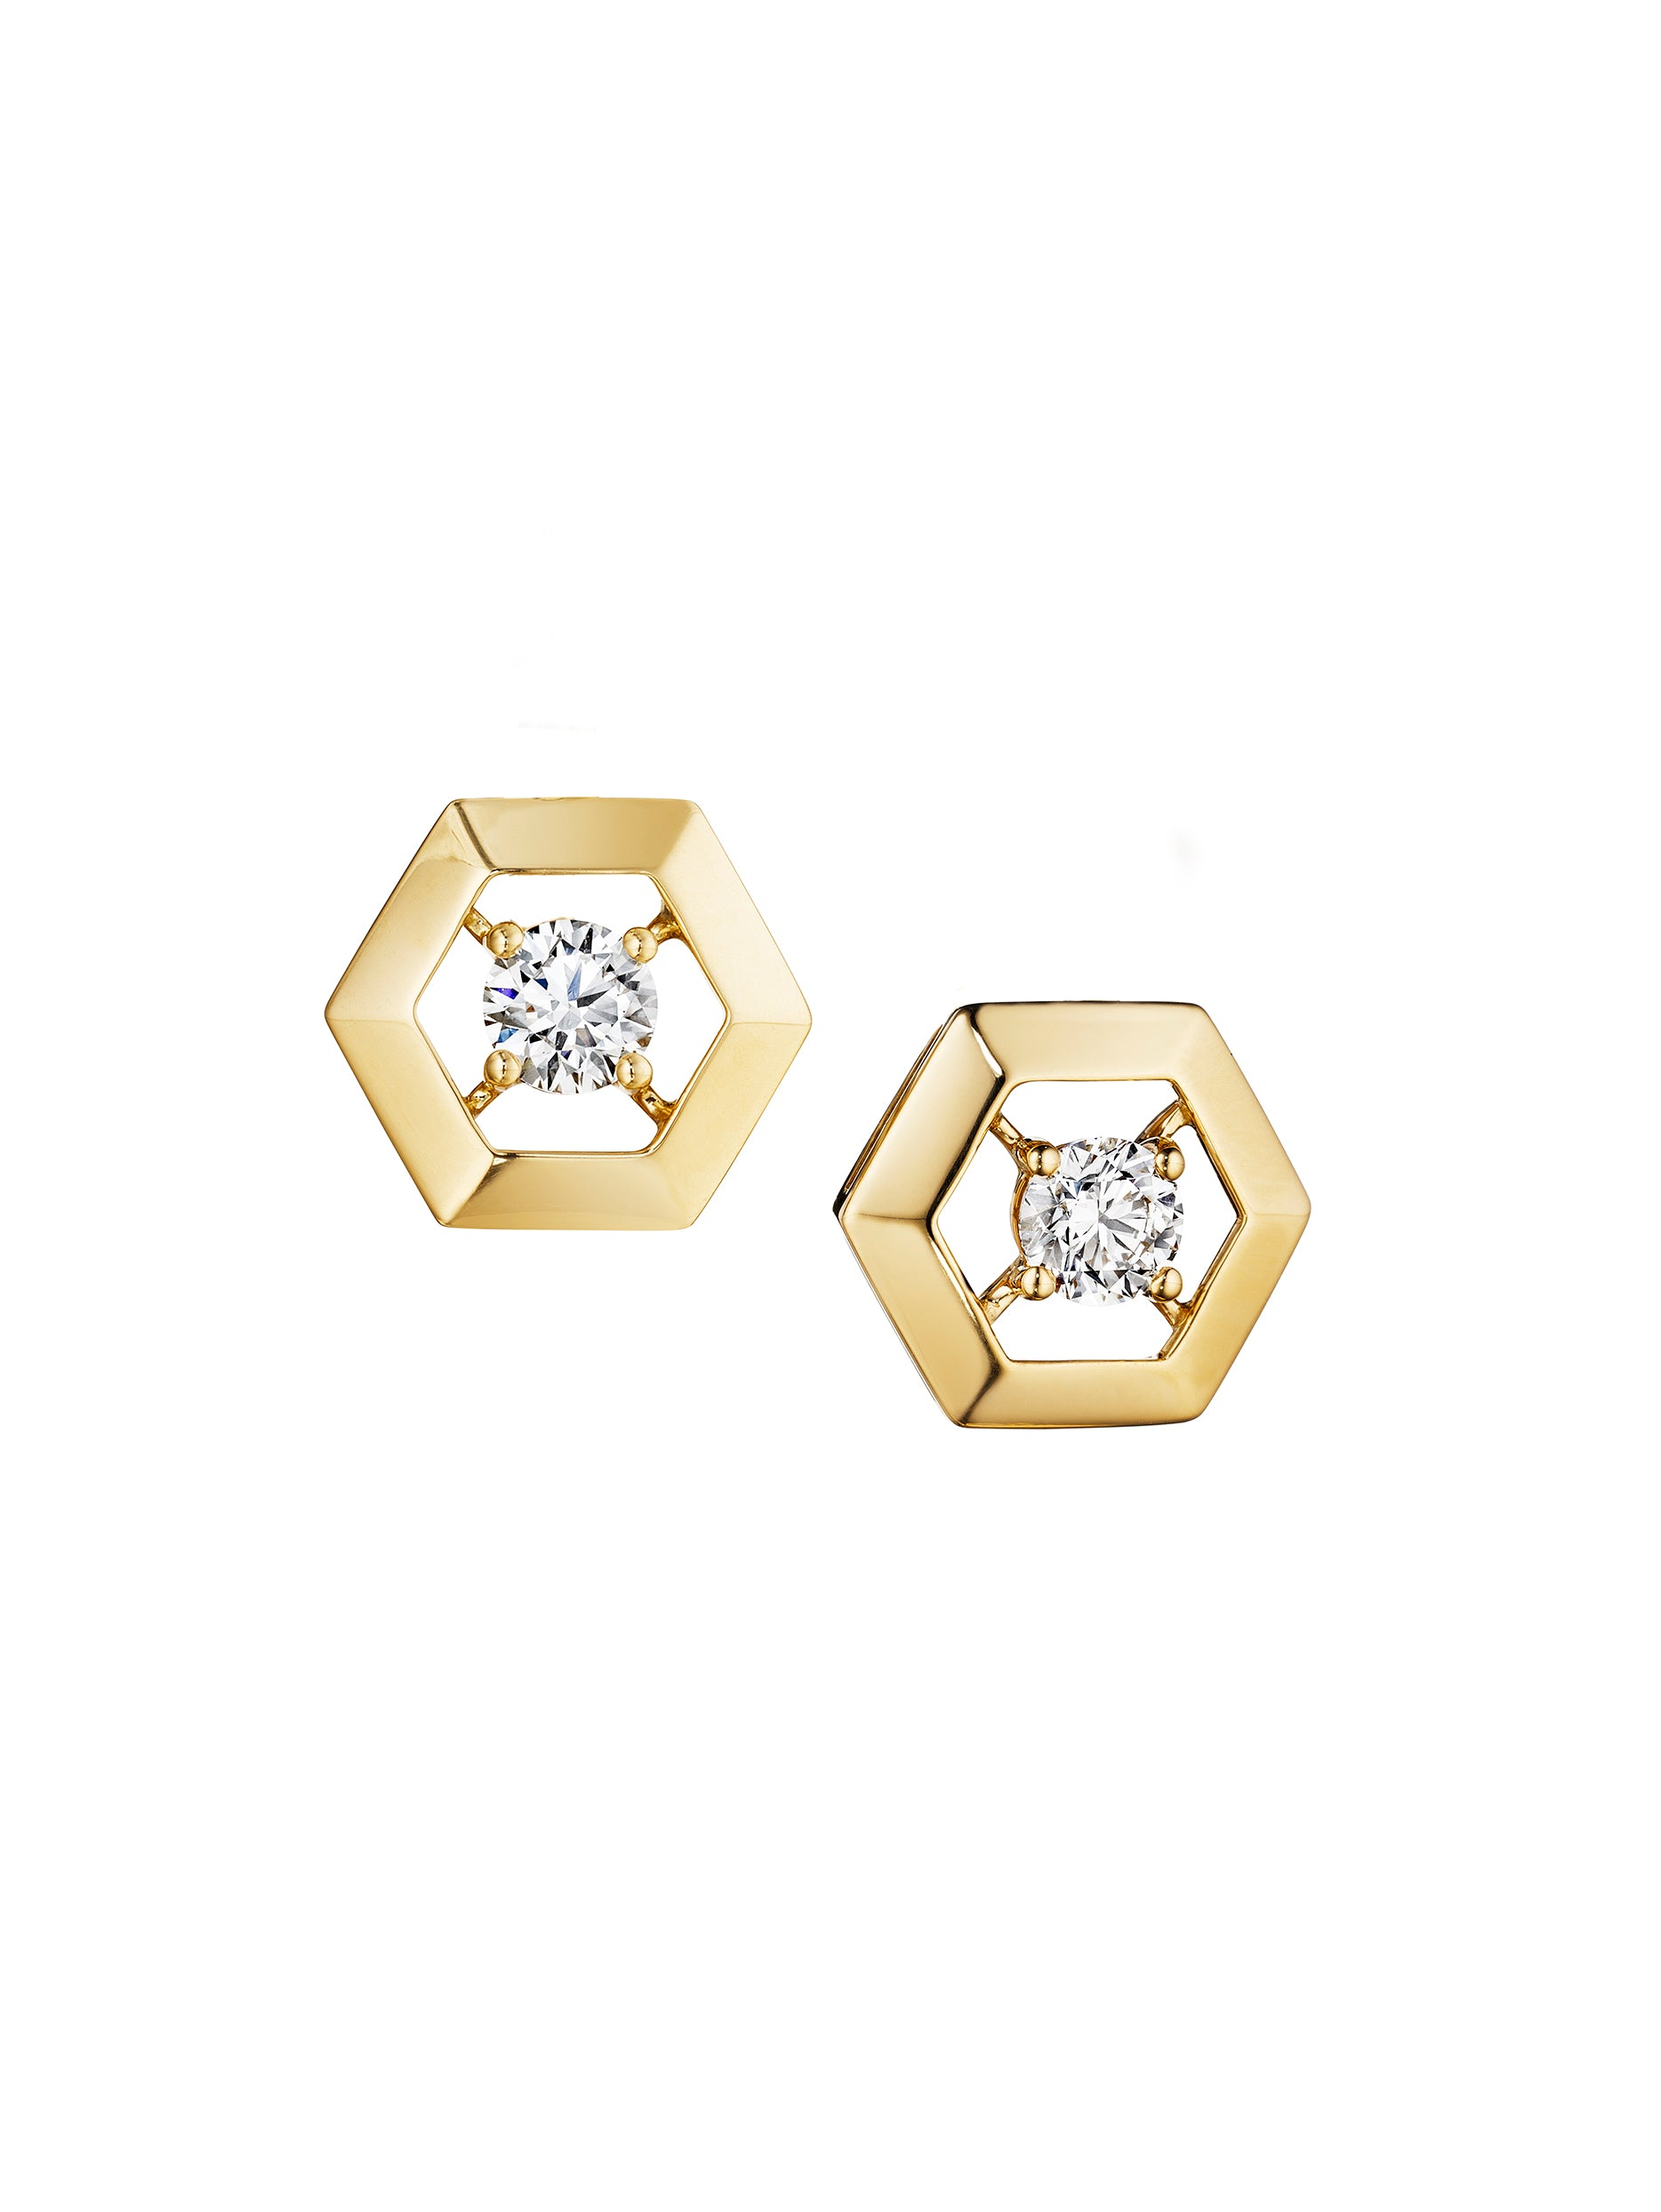 ashley in jewellery hexagon minimalist rings co ring summer singapore gold earrings shop